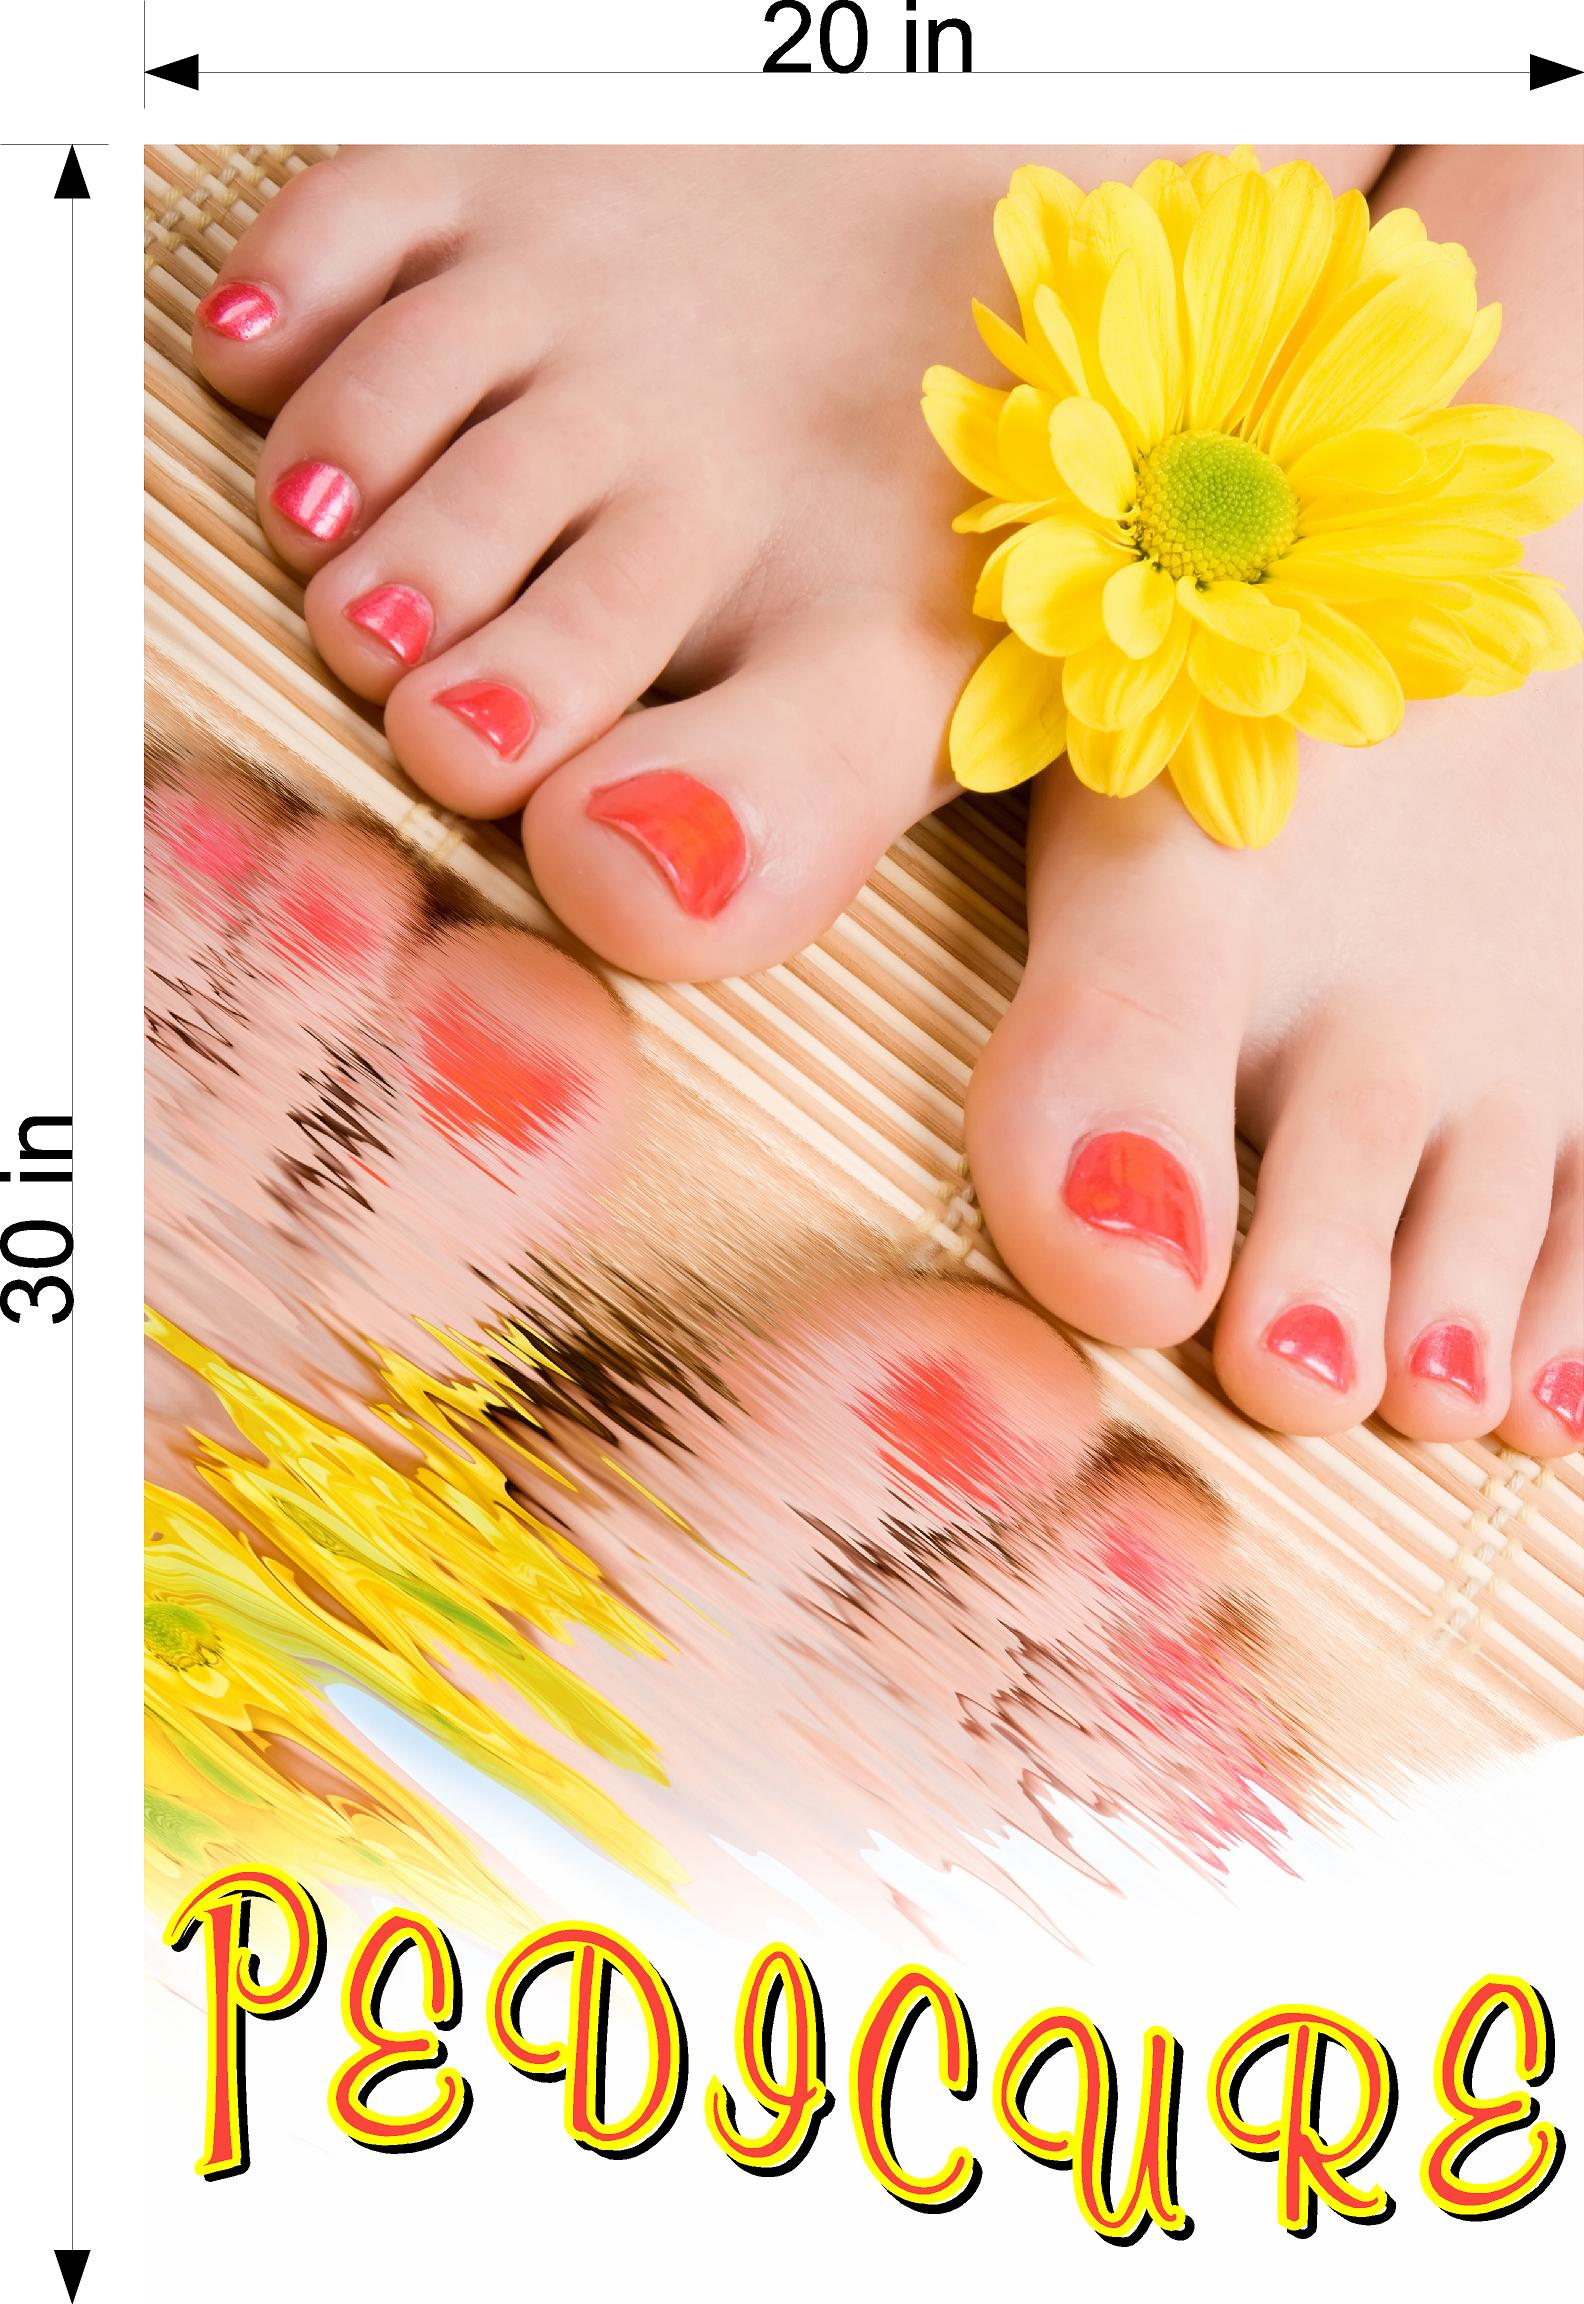 Pedicure 26 Photo-Realistic Paper Poster Premium Matte Interior Inside Sign Advertising Marketing Wall Window Non-Laminated Vertical